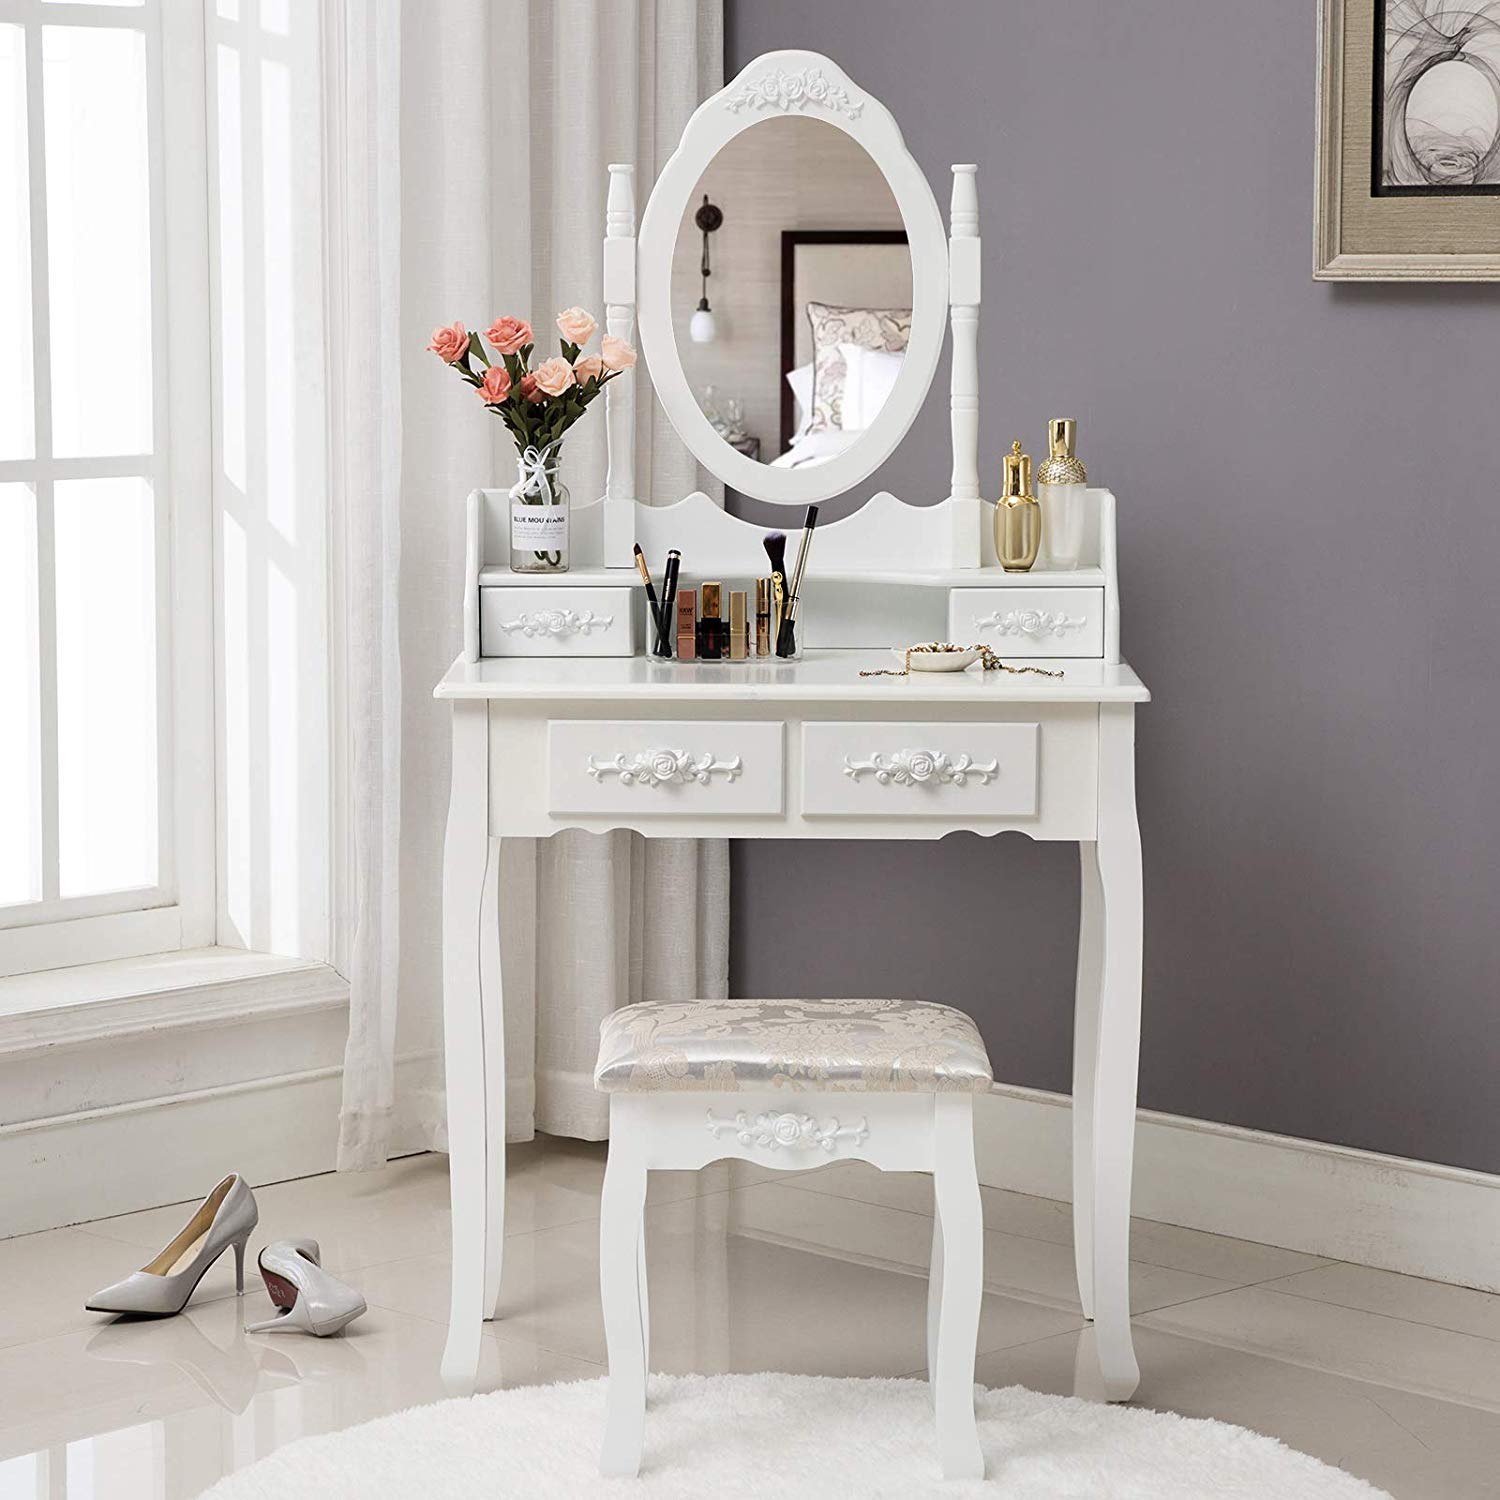 Unihome Vanity Table Set Makeup Table with Round Mirror and Stool Small Dressing Tables with Drawers Makeup Vanity Table White-3, 4 Drawers